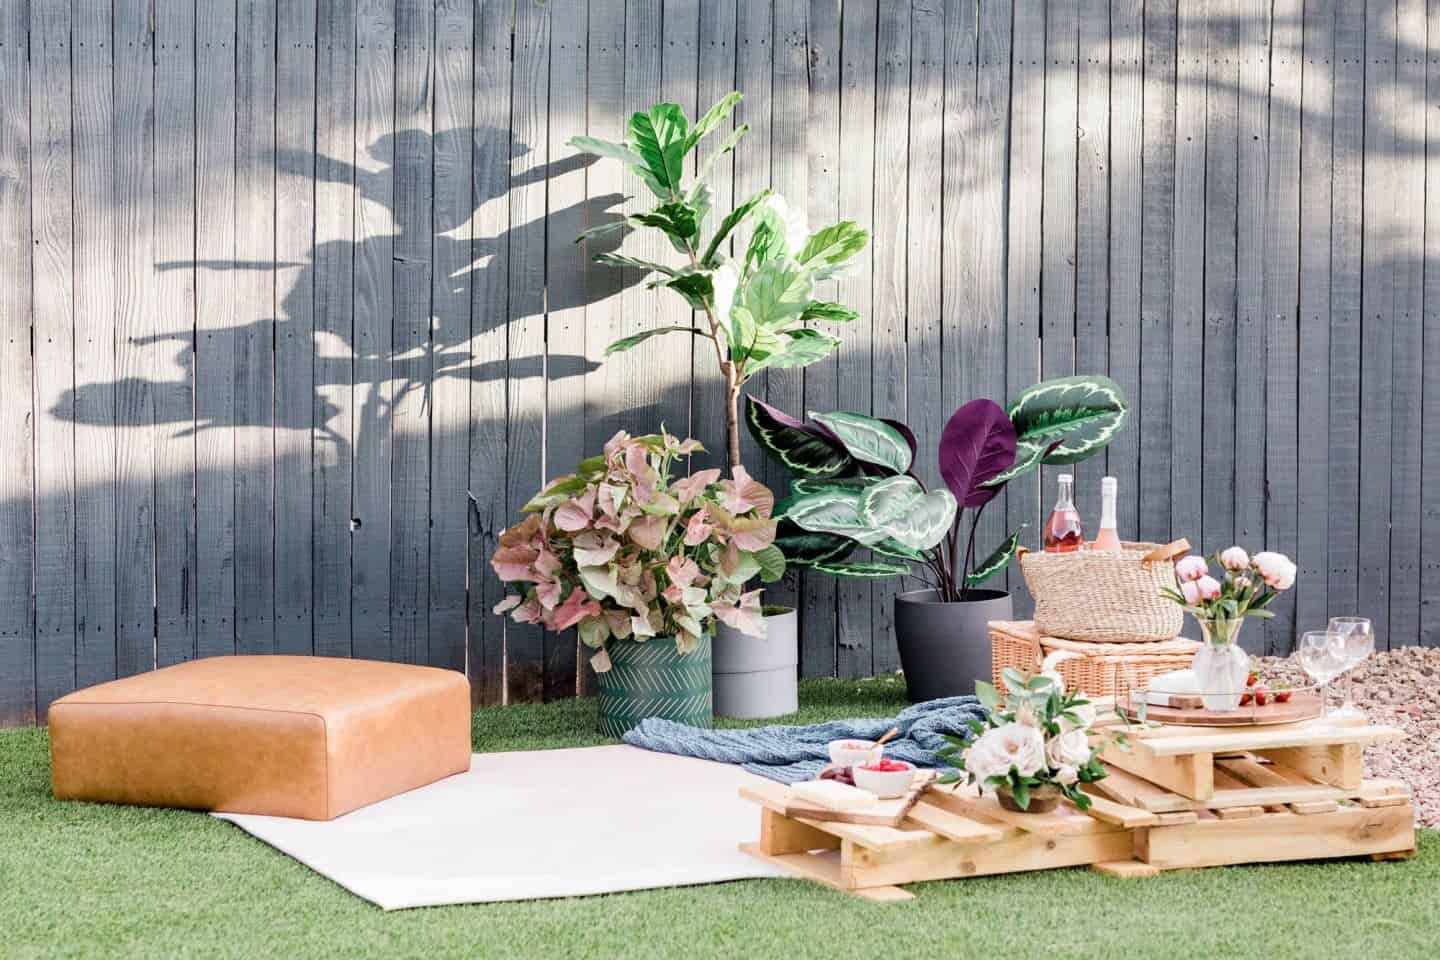 A rustic picnic is the perfect way to create holiday vibes for a summer staycation in your garden